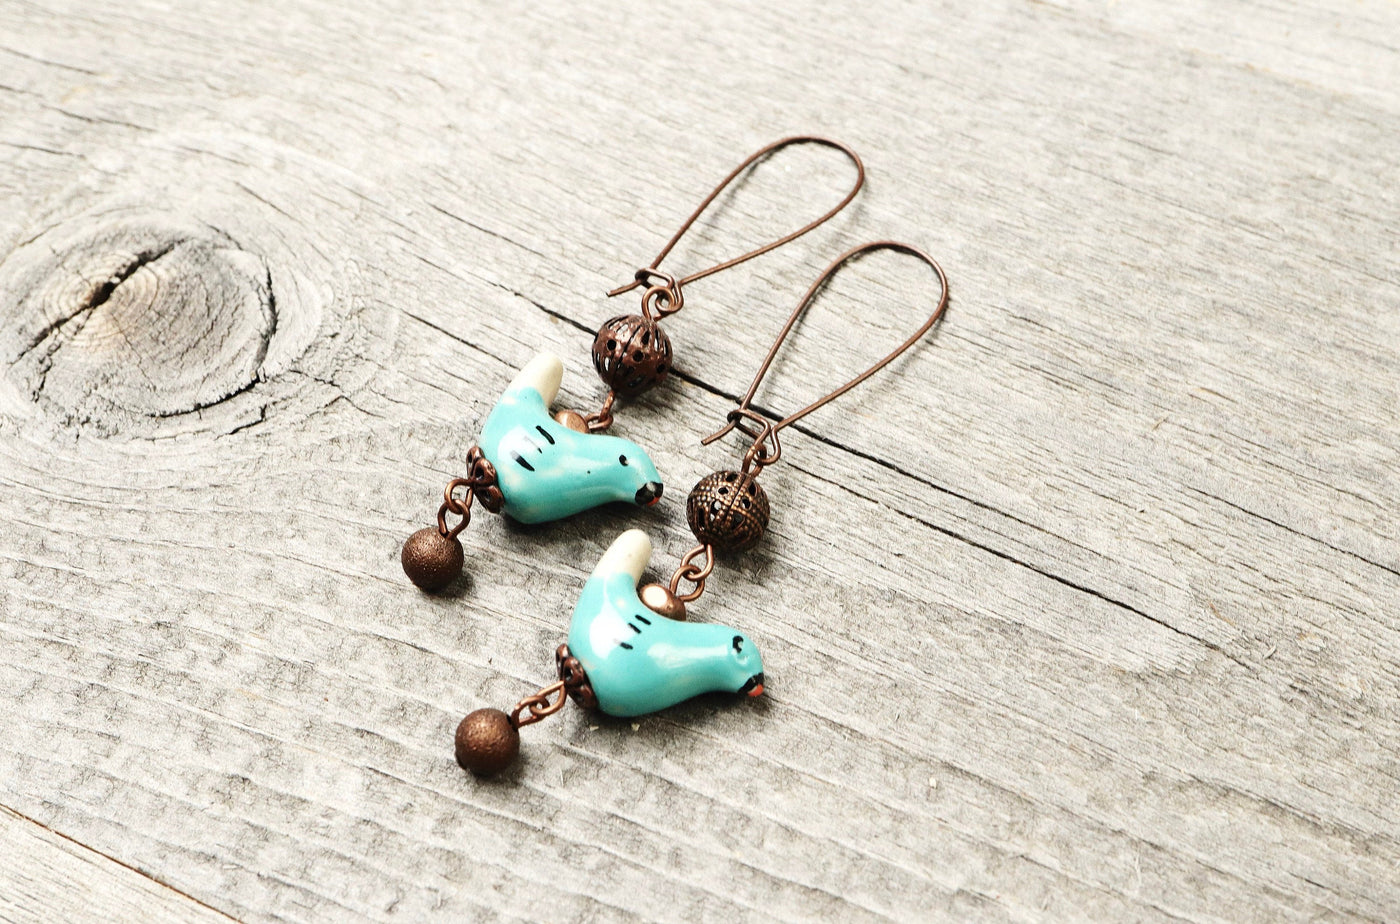 Blue Bird Cute Ceramic Boho Earrings - Aquamarine Lovely Valentine's Day Gift Playful Quirky Fun Unique Adorable Simple Handmade Jewelry